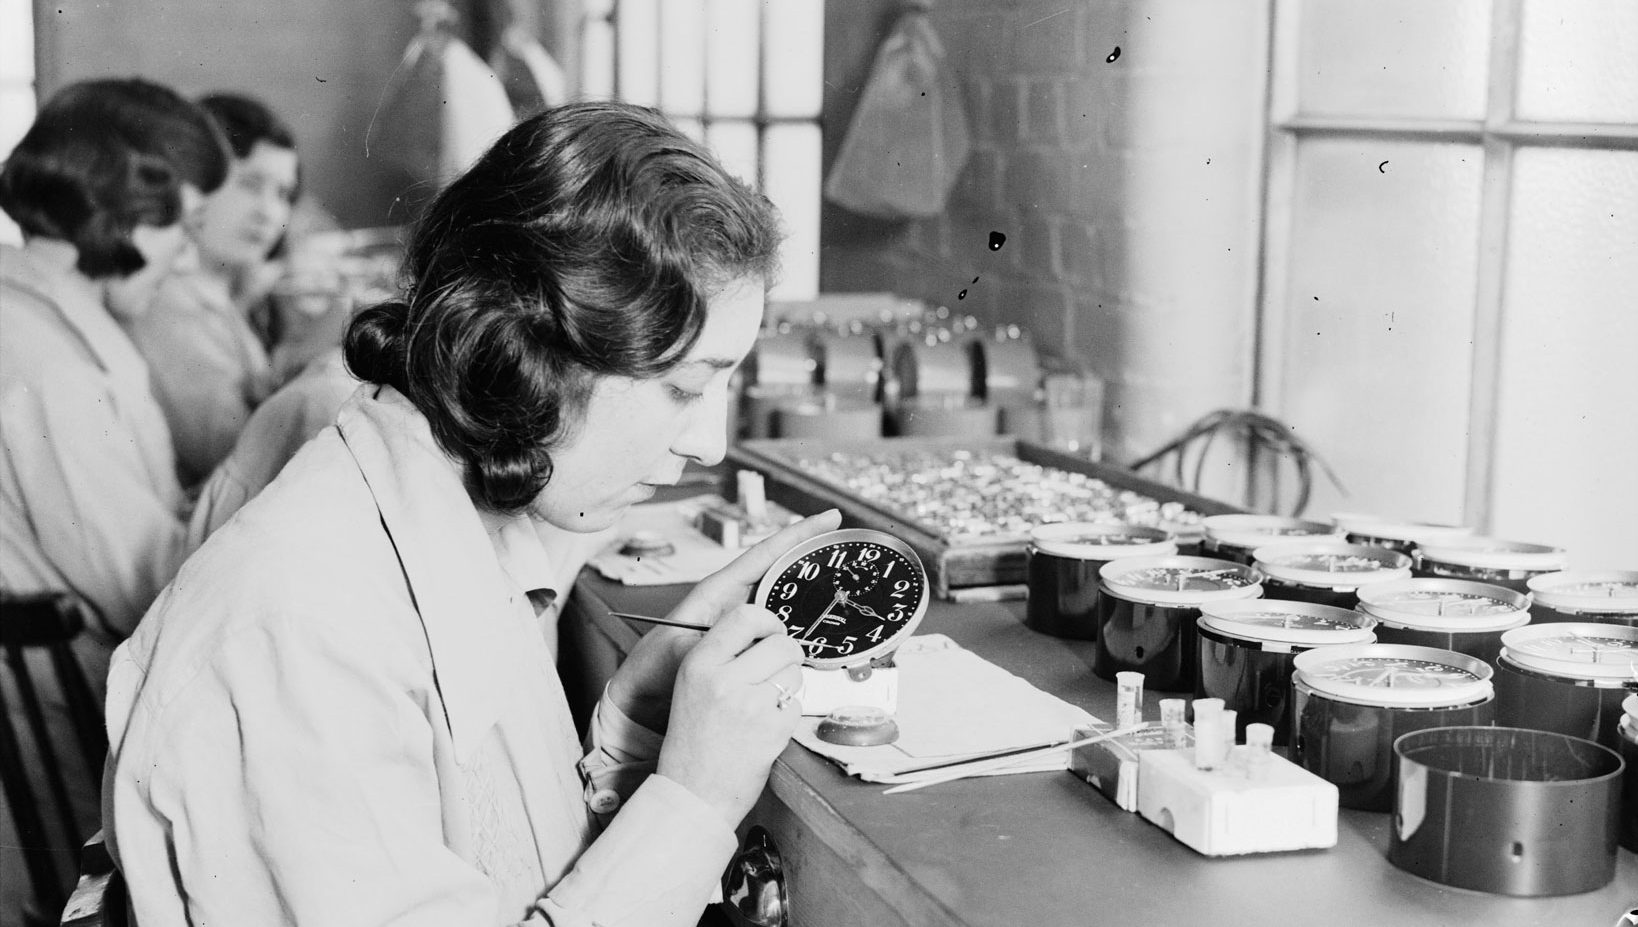 Women painting alarm clock faces with radium-laden paint in January 1932. (Daily Herald Archive/SSPL/Getty Images)